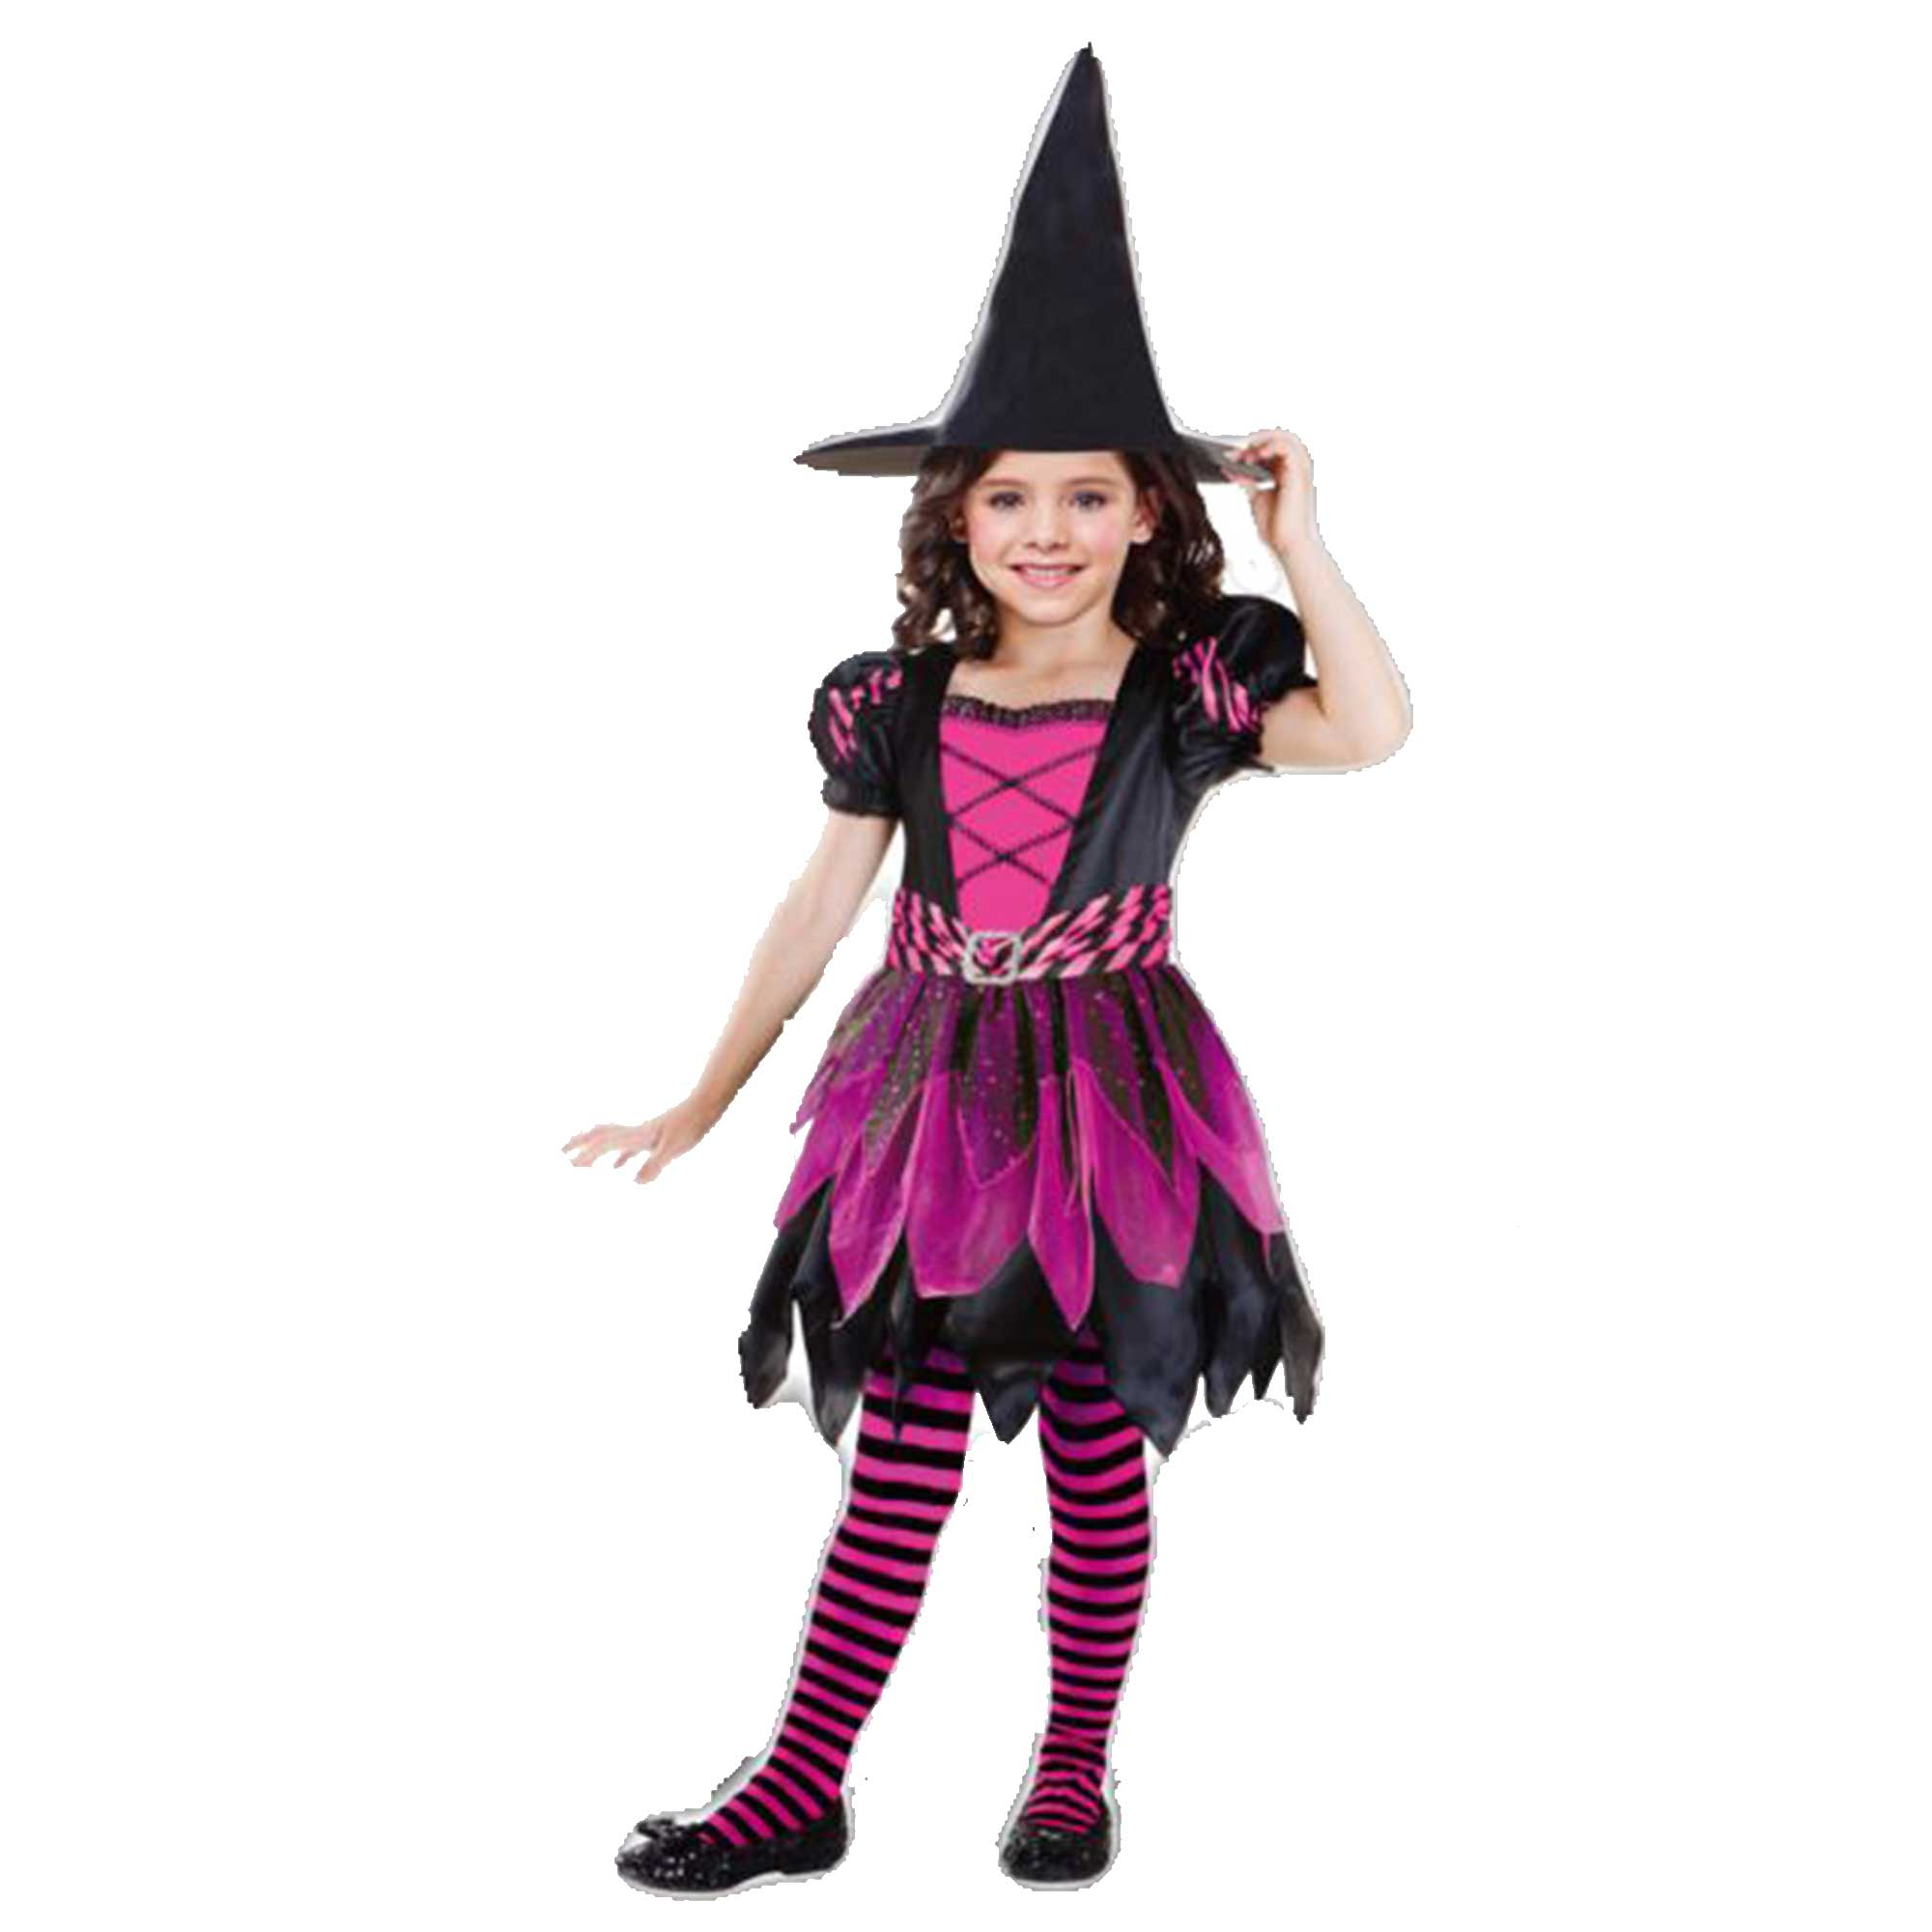 Costume Pink Glitter Witch Girls 5-7 Years